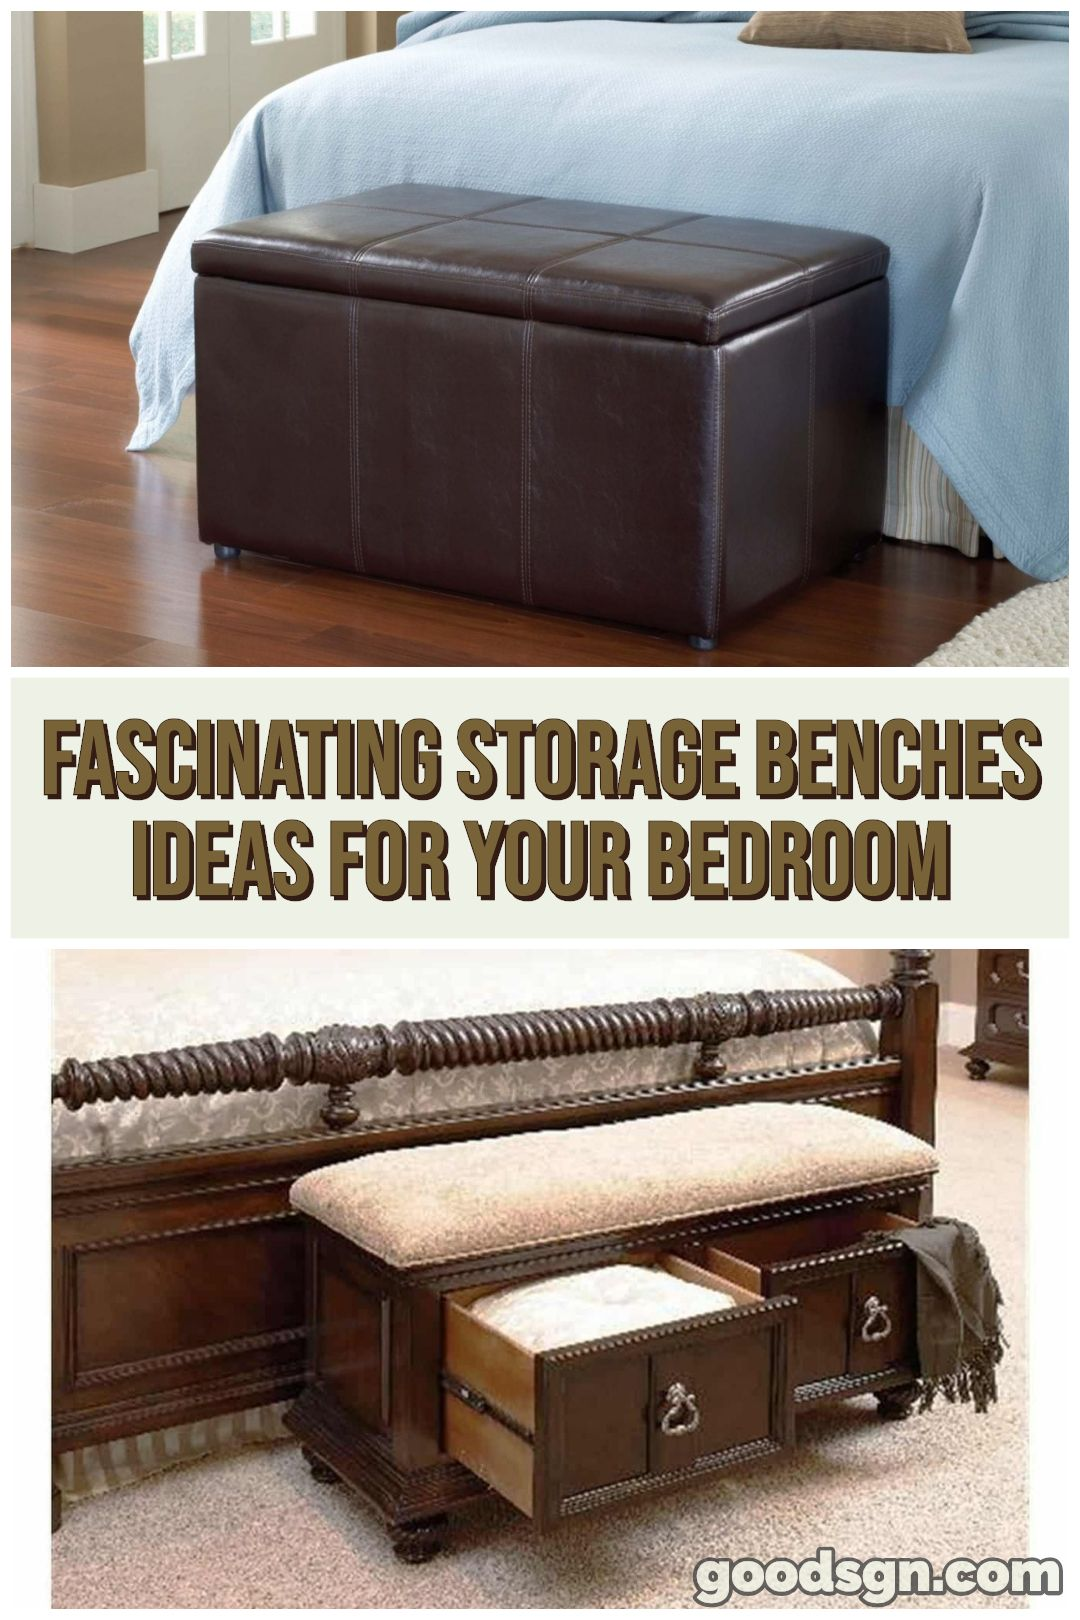 15 Top And Fascinating Storage Benches Ideas For Your Bedroom Bench With Storage Storage Bench